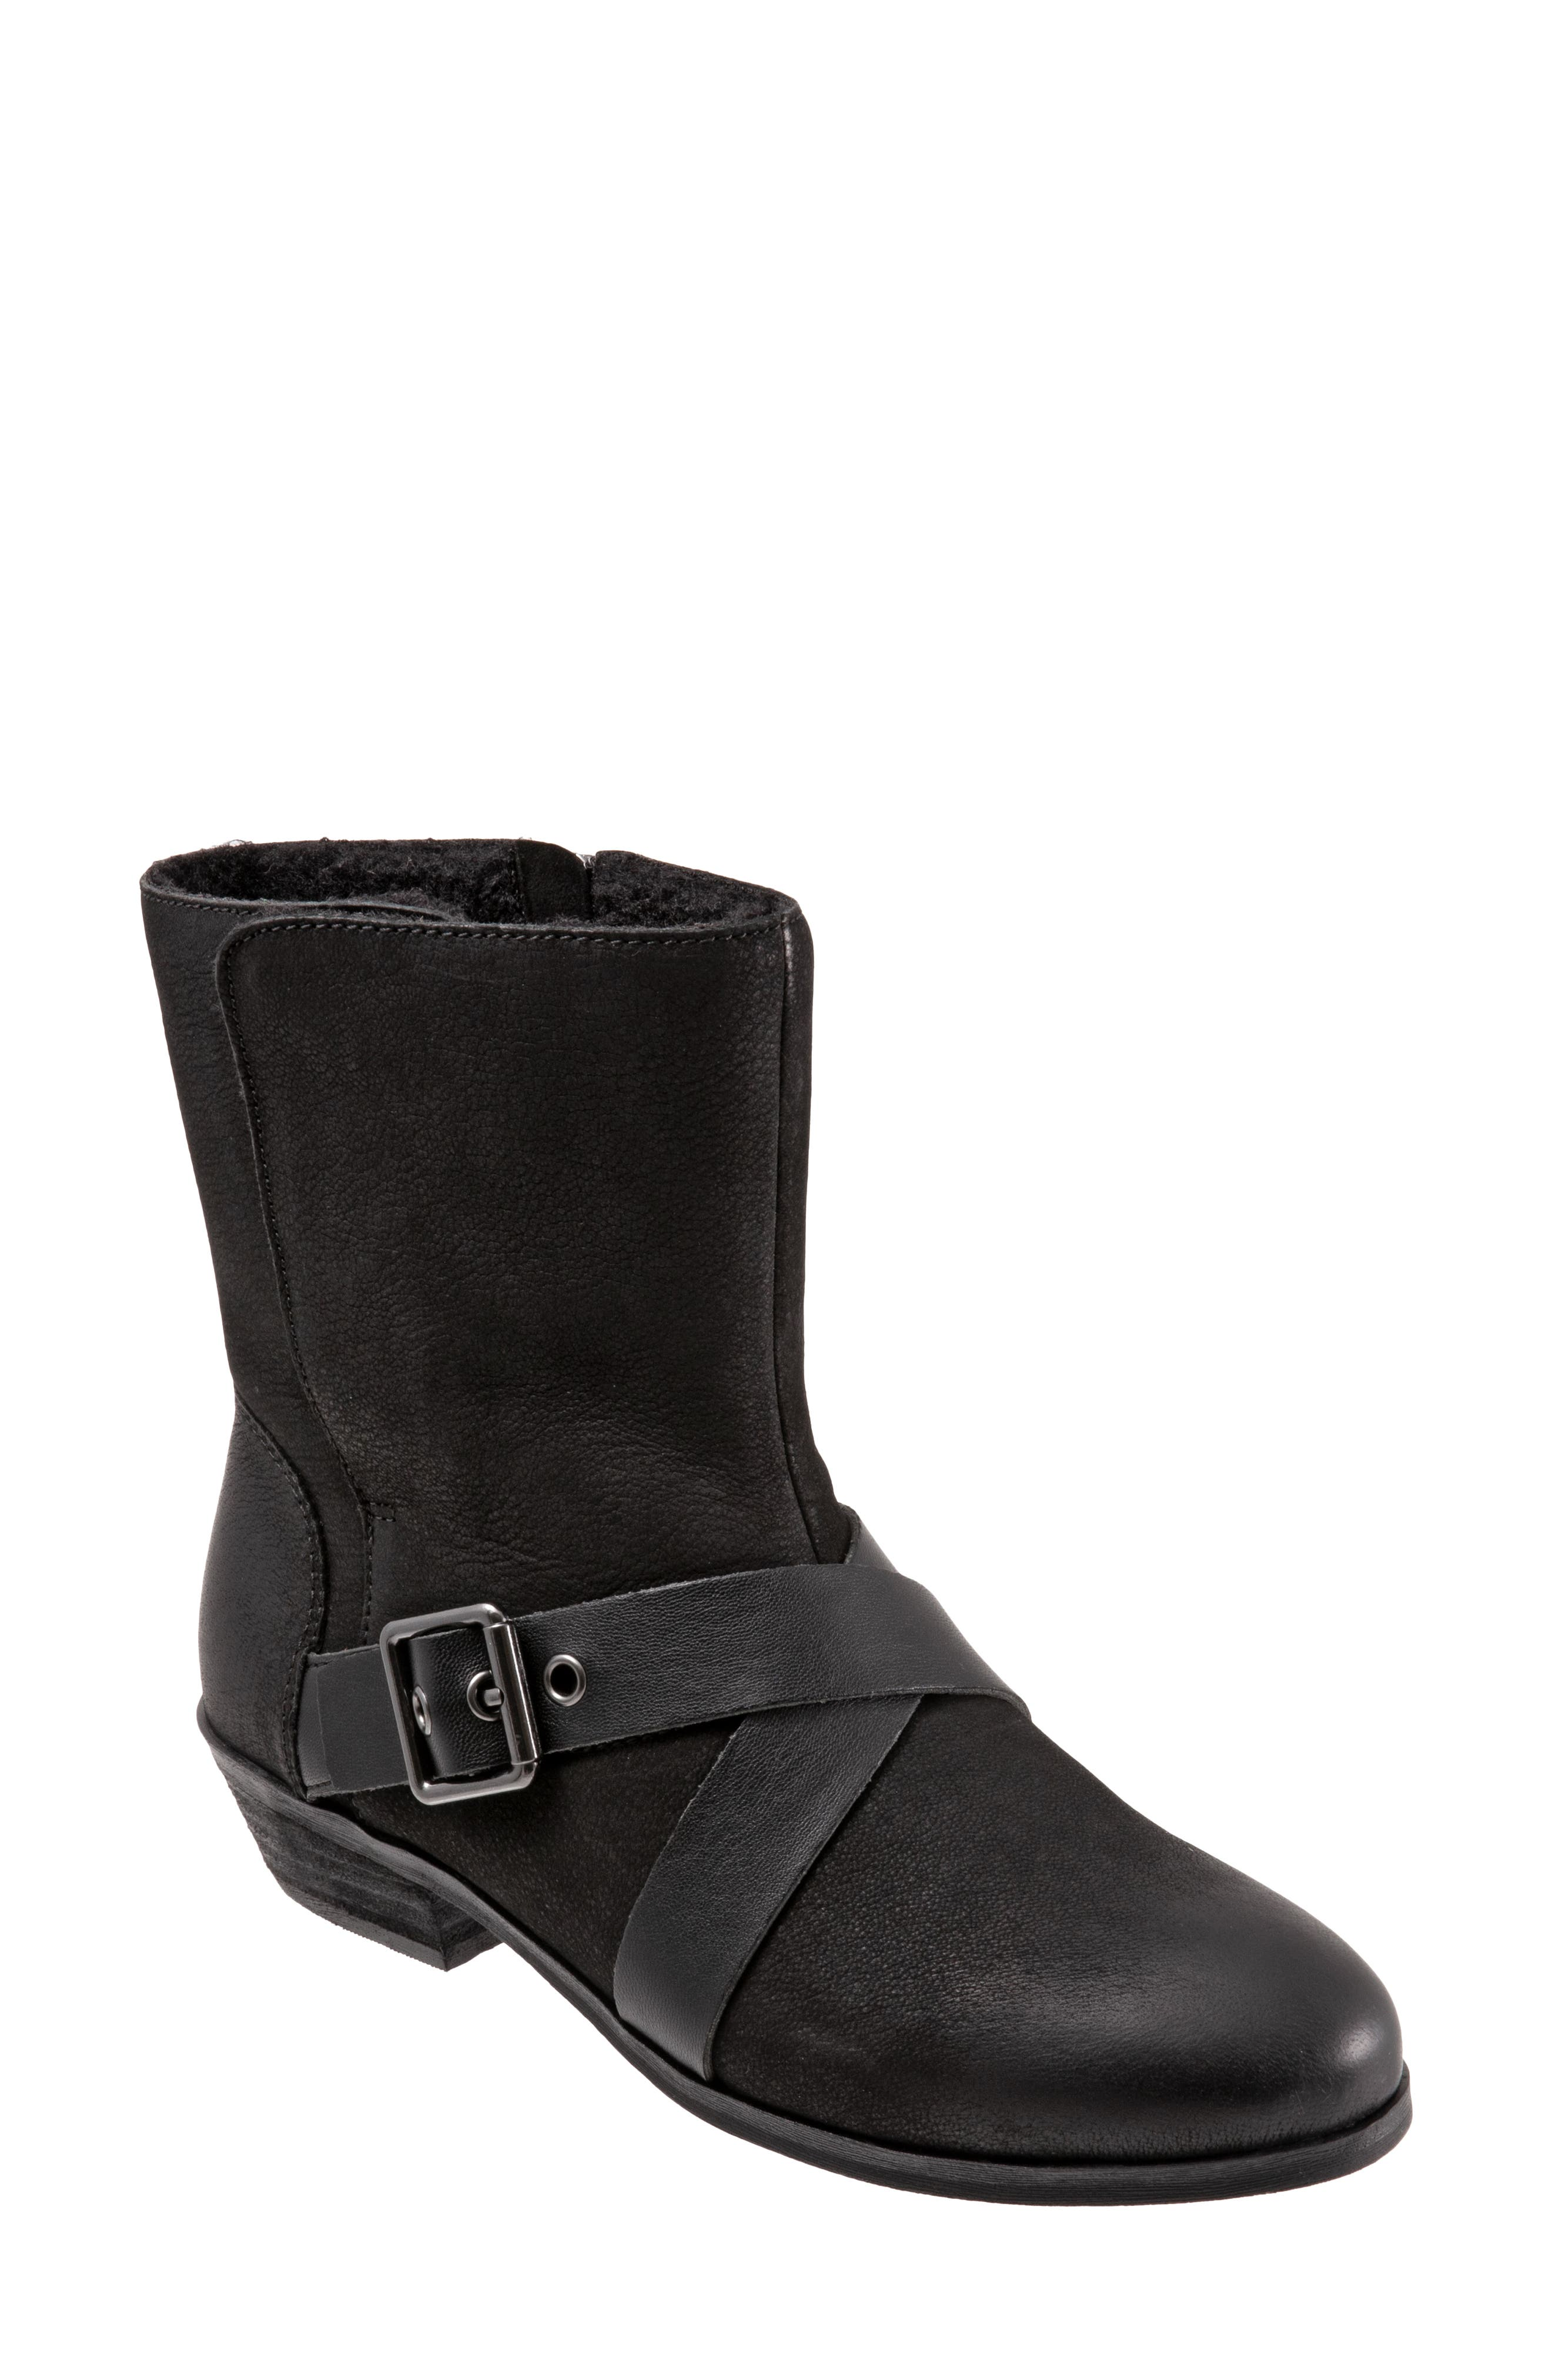 Experience true comfort in style with this faux fur-lined boot featuring decorative crossover straps and a memory foam-cushioned sole. Style Name: Softwalk Rayne Faux Fur Lined Bootie (Women). Style Number: 6128756. Available in stores.